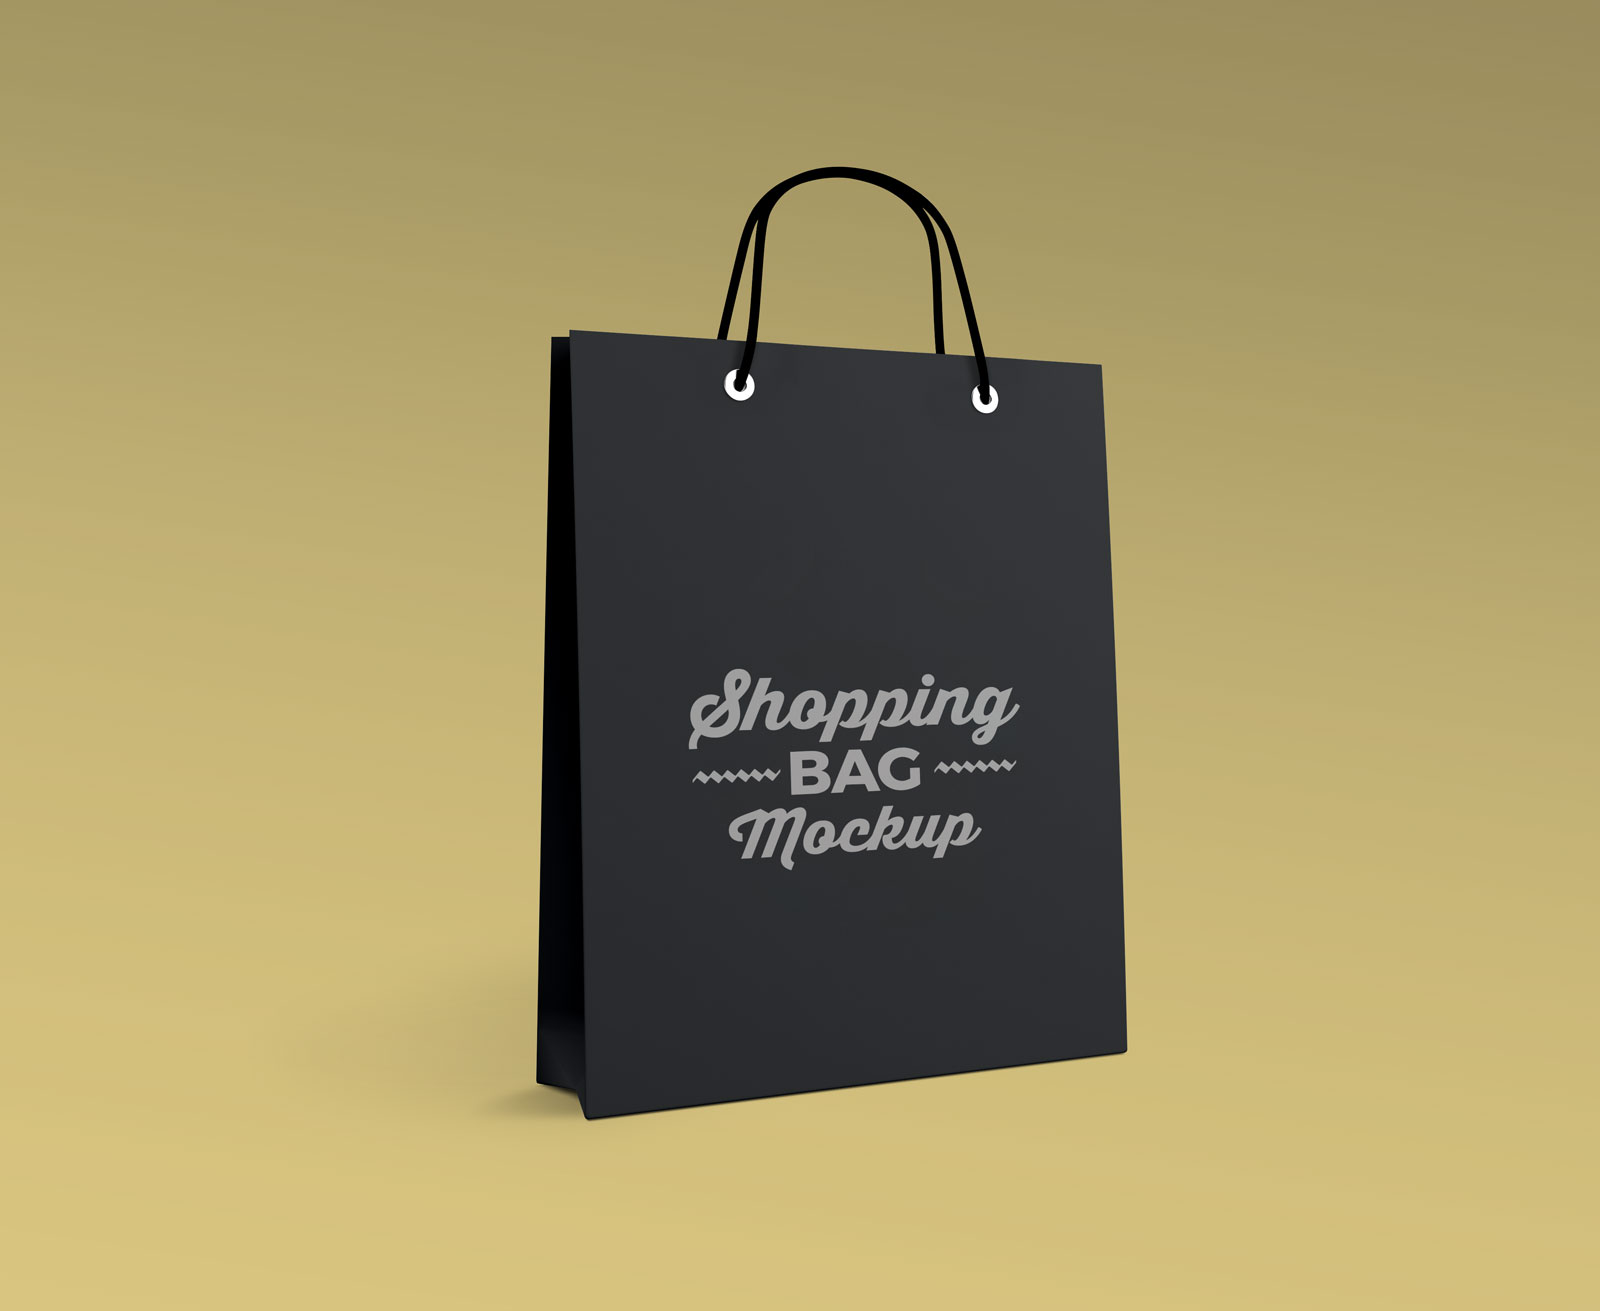 Free-Black-Shopping-Bag-Mockup-PSD